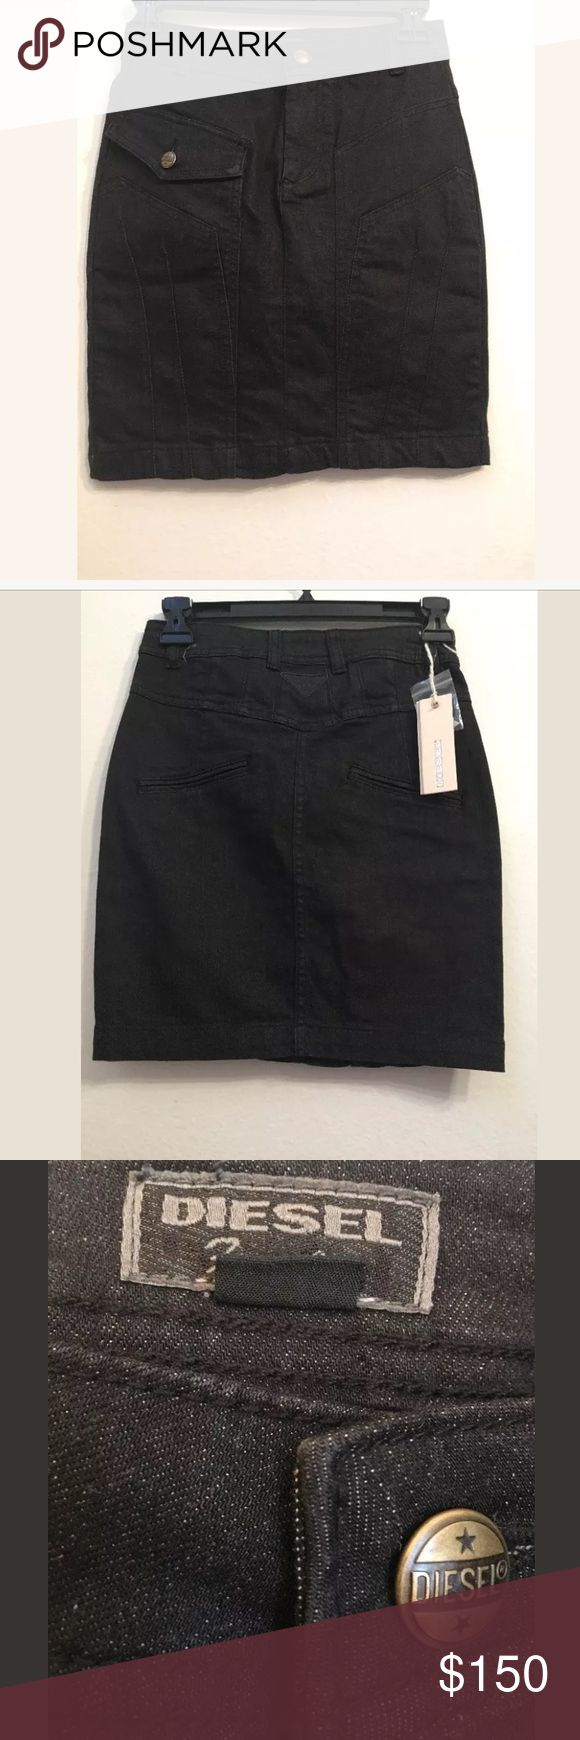 NWT $150 DIESEL Cotton Black Mini Skirt Size 23 NWT $150 DIESEL C18 Cotton Blend Black Mini Skirt Size 23  Your satisfaction is our #1 priority.  This is why we ship twice daily Monday thru Saturday to get the item to you as quickly as possible!! :).  If for any reason you are not 100% satisfied please message us and we will work with you to make it right!!      -Retail Price: $150 + TAX -Material: 98% Cotton, 2% Spandex Diesel Skirts Mini